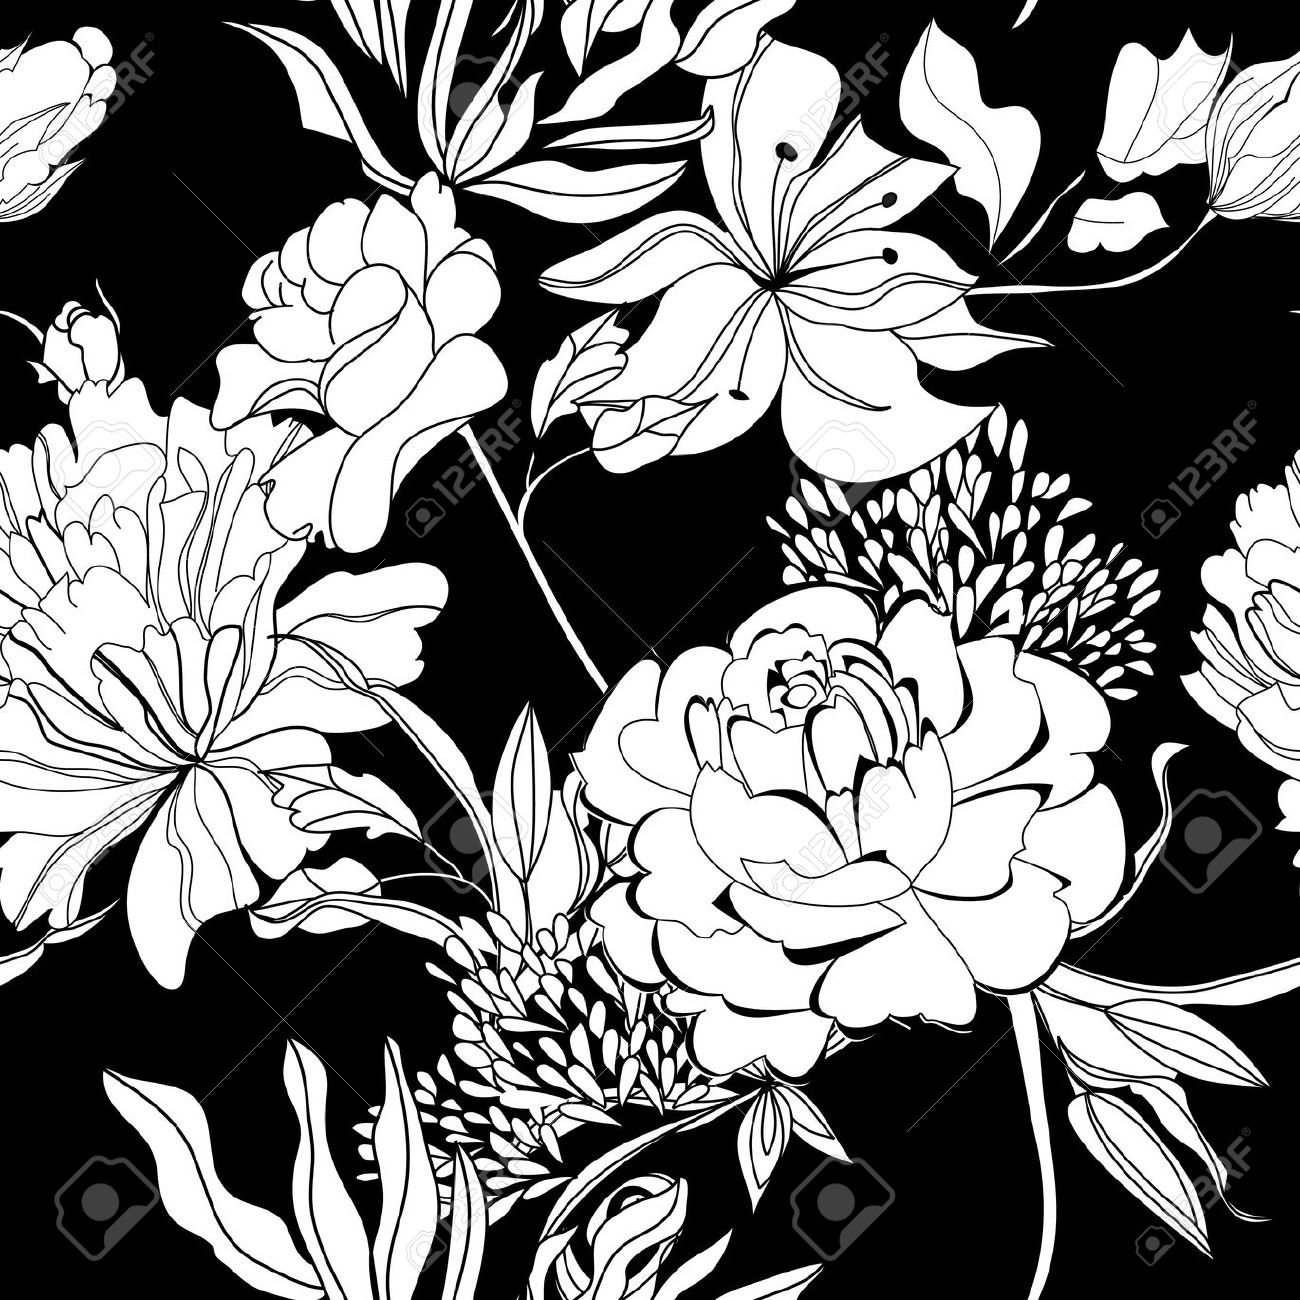 79300a225 Flower Drawing Black And White at GetDrawings.com | Free for ...